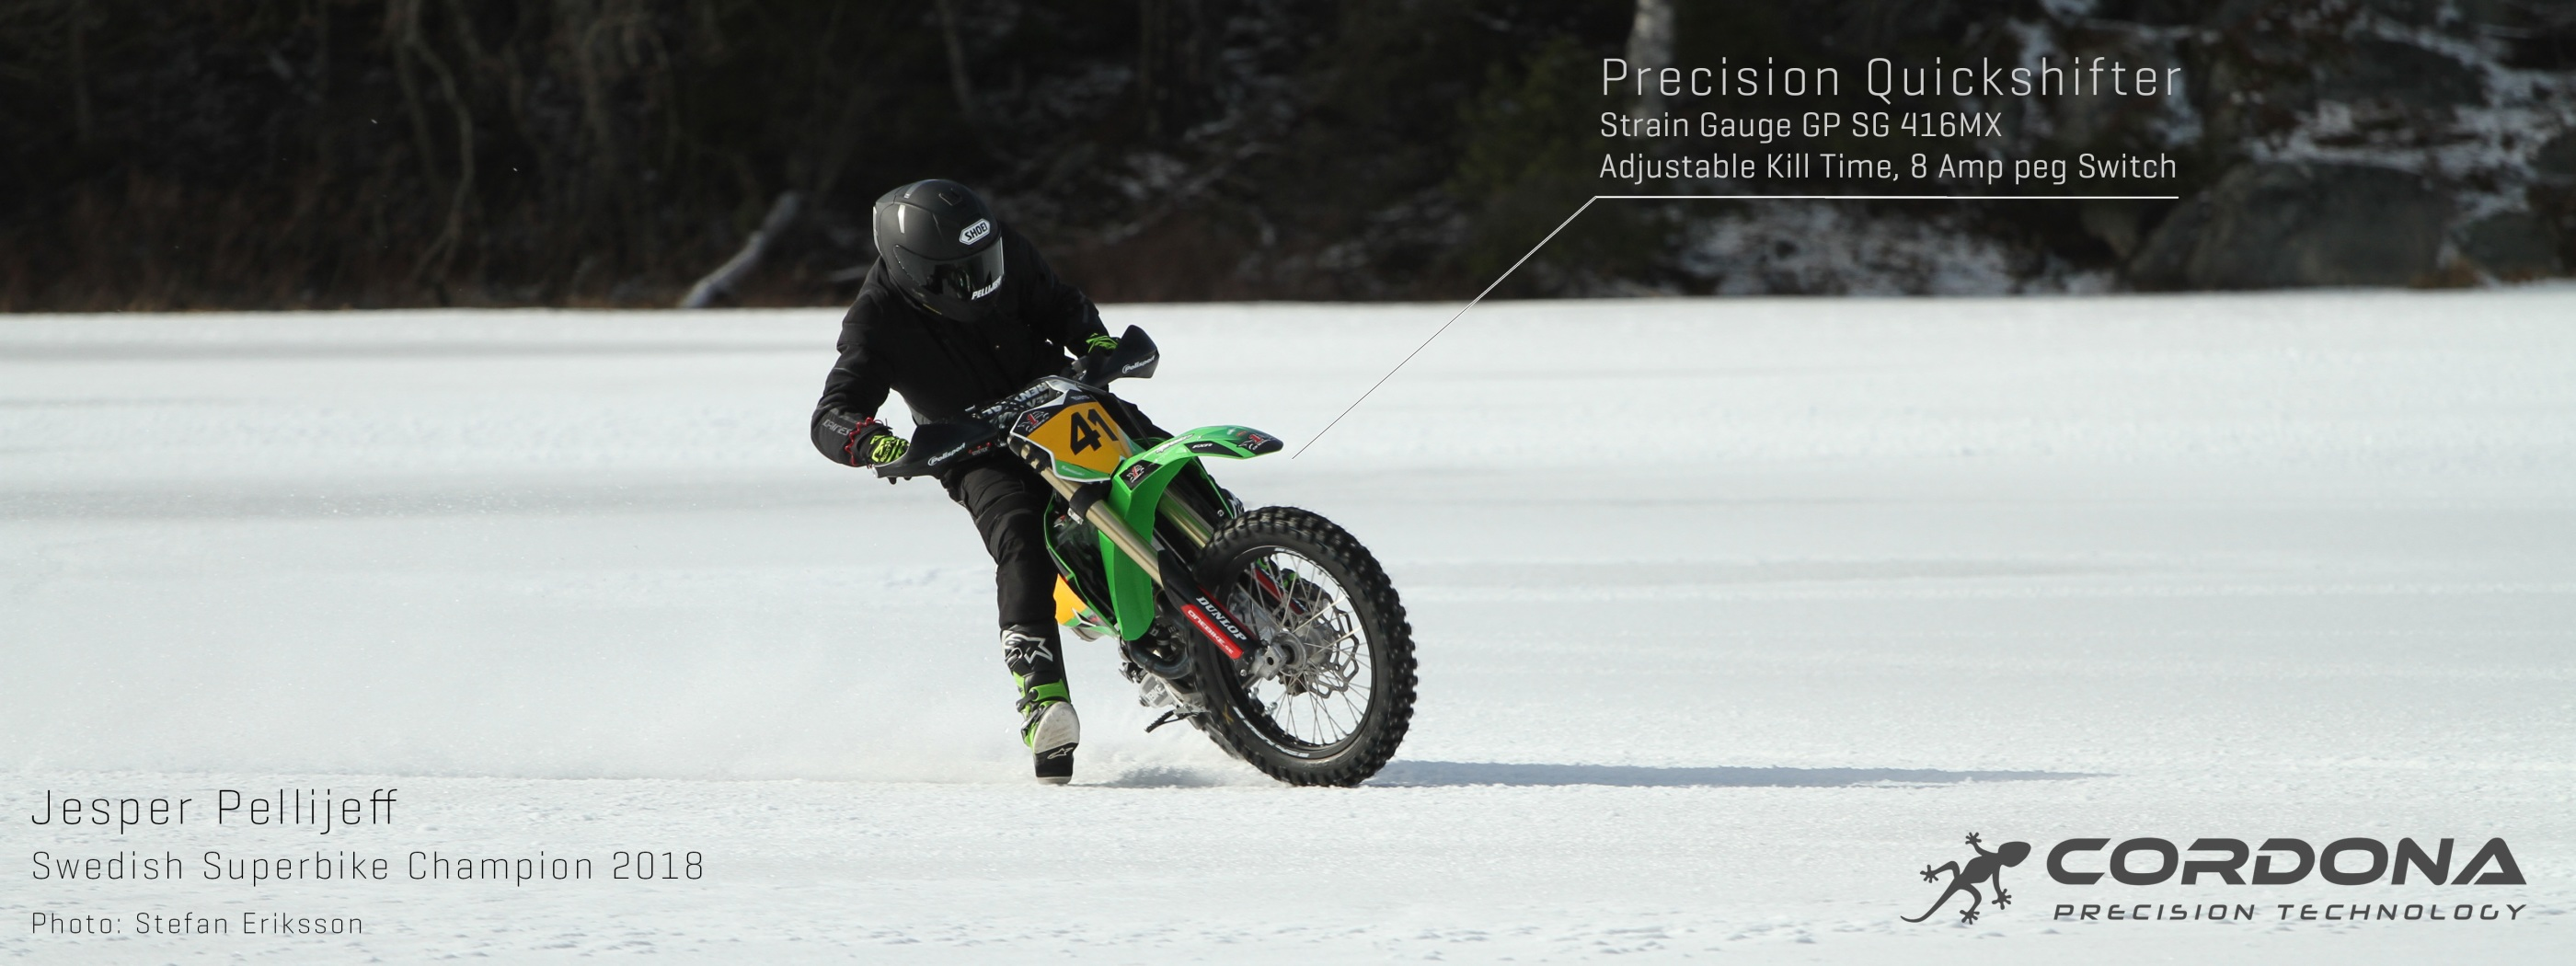 Pelljeff Ice 416MX